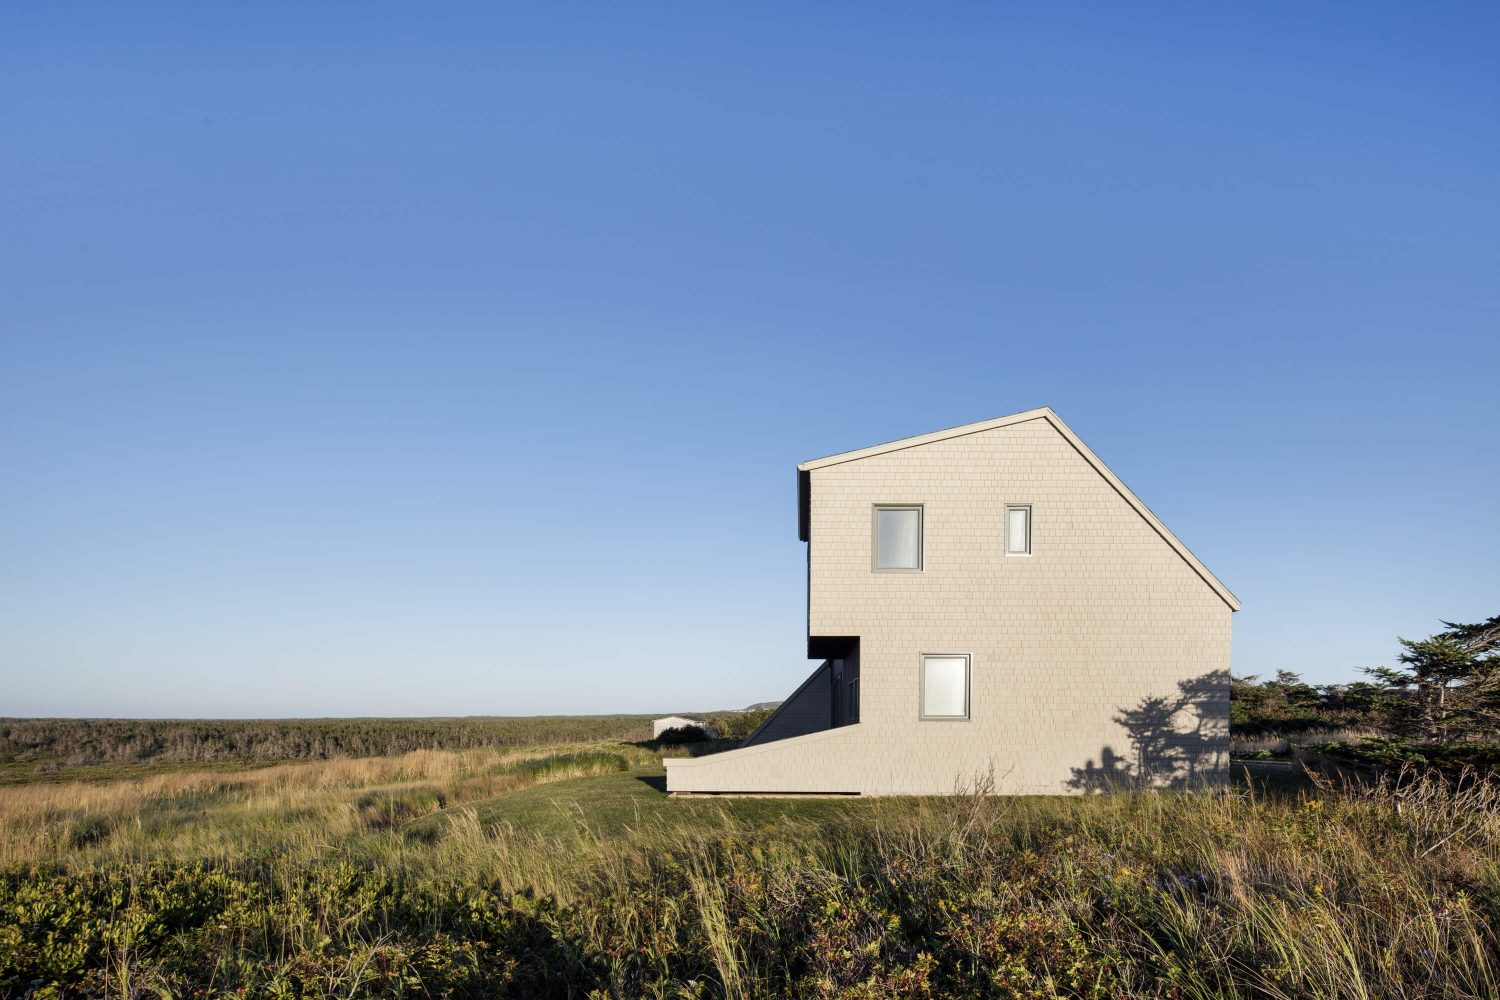 West Dune House by Bourgeois / Lechasseur architectes